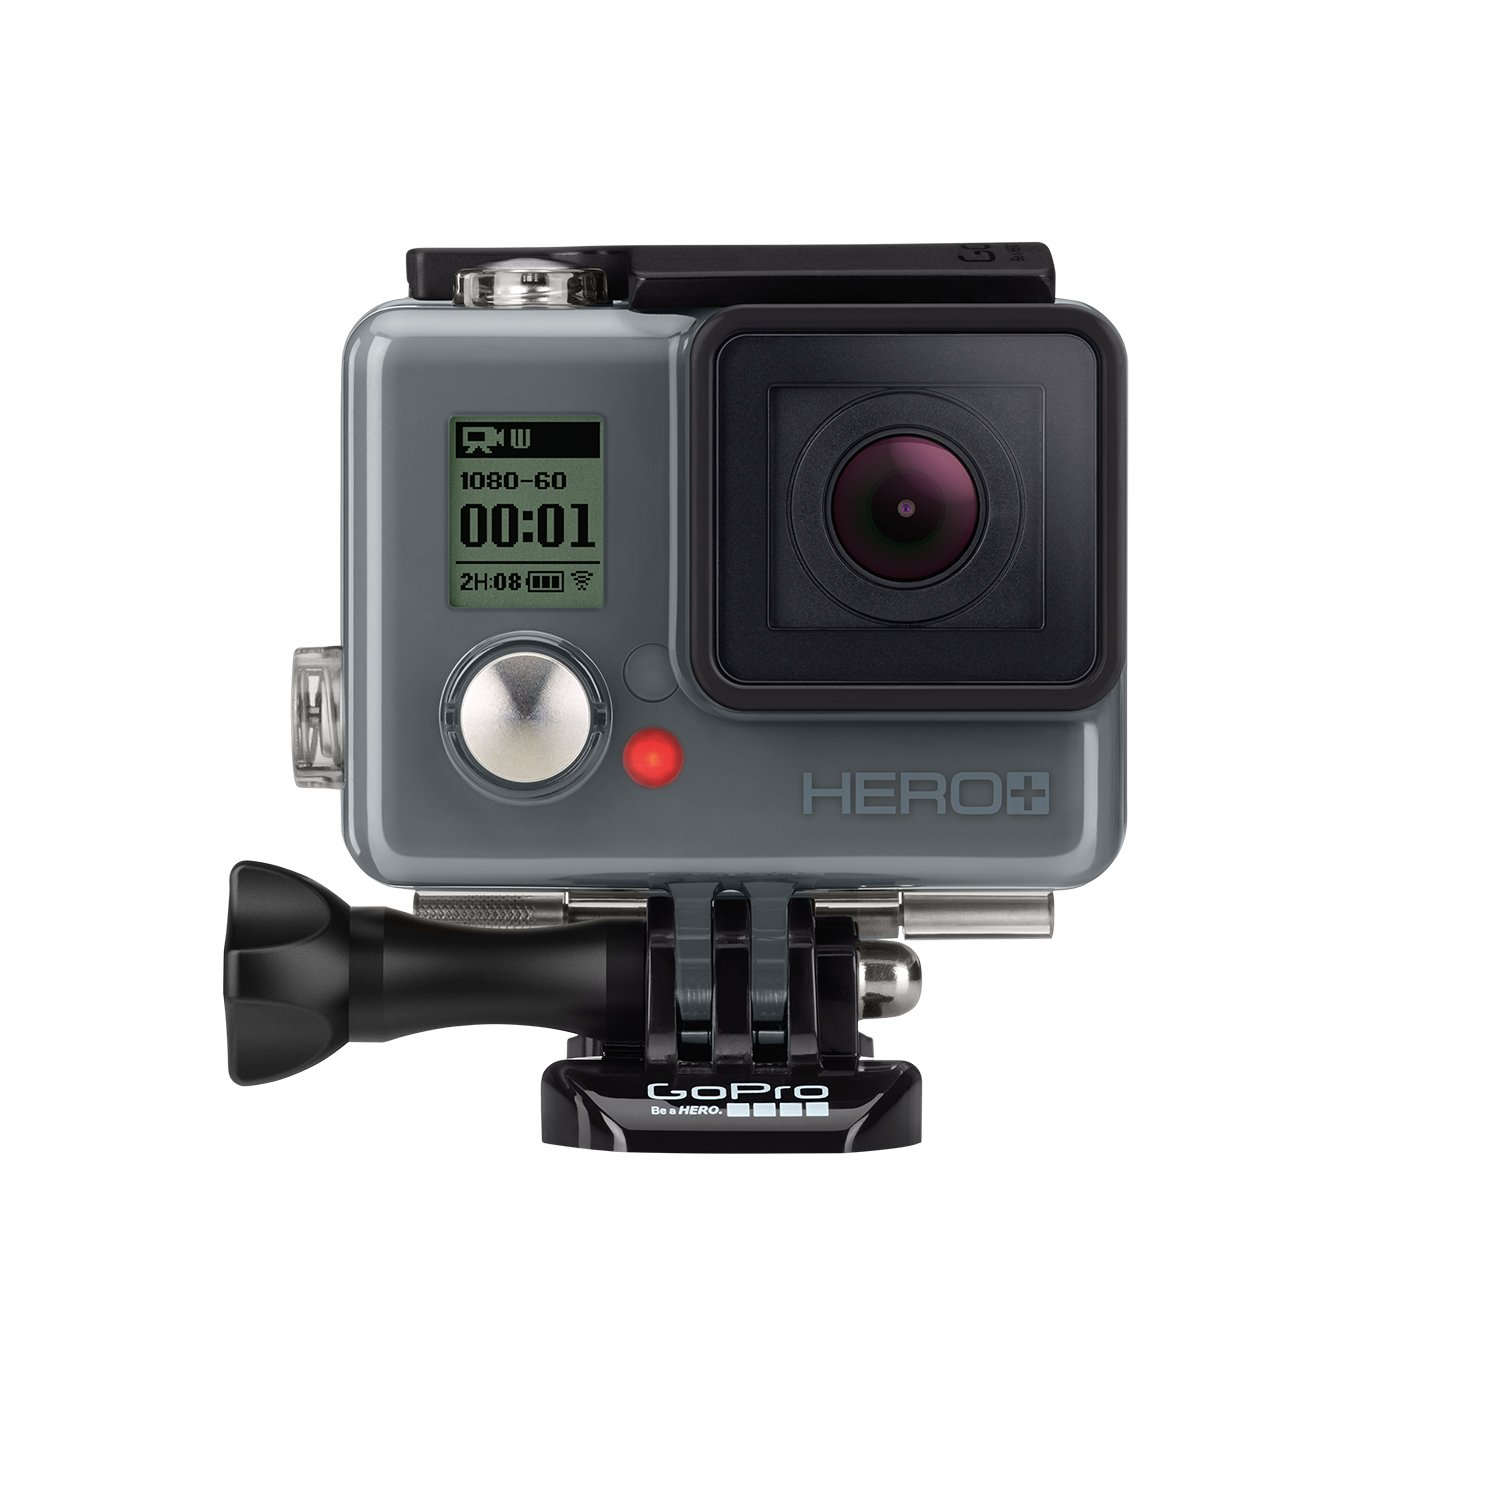 GoPro Camera HERO+ LCD HD Video Recording Camera by GoPro